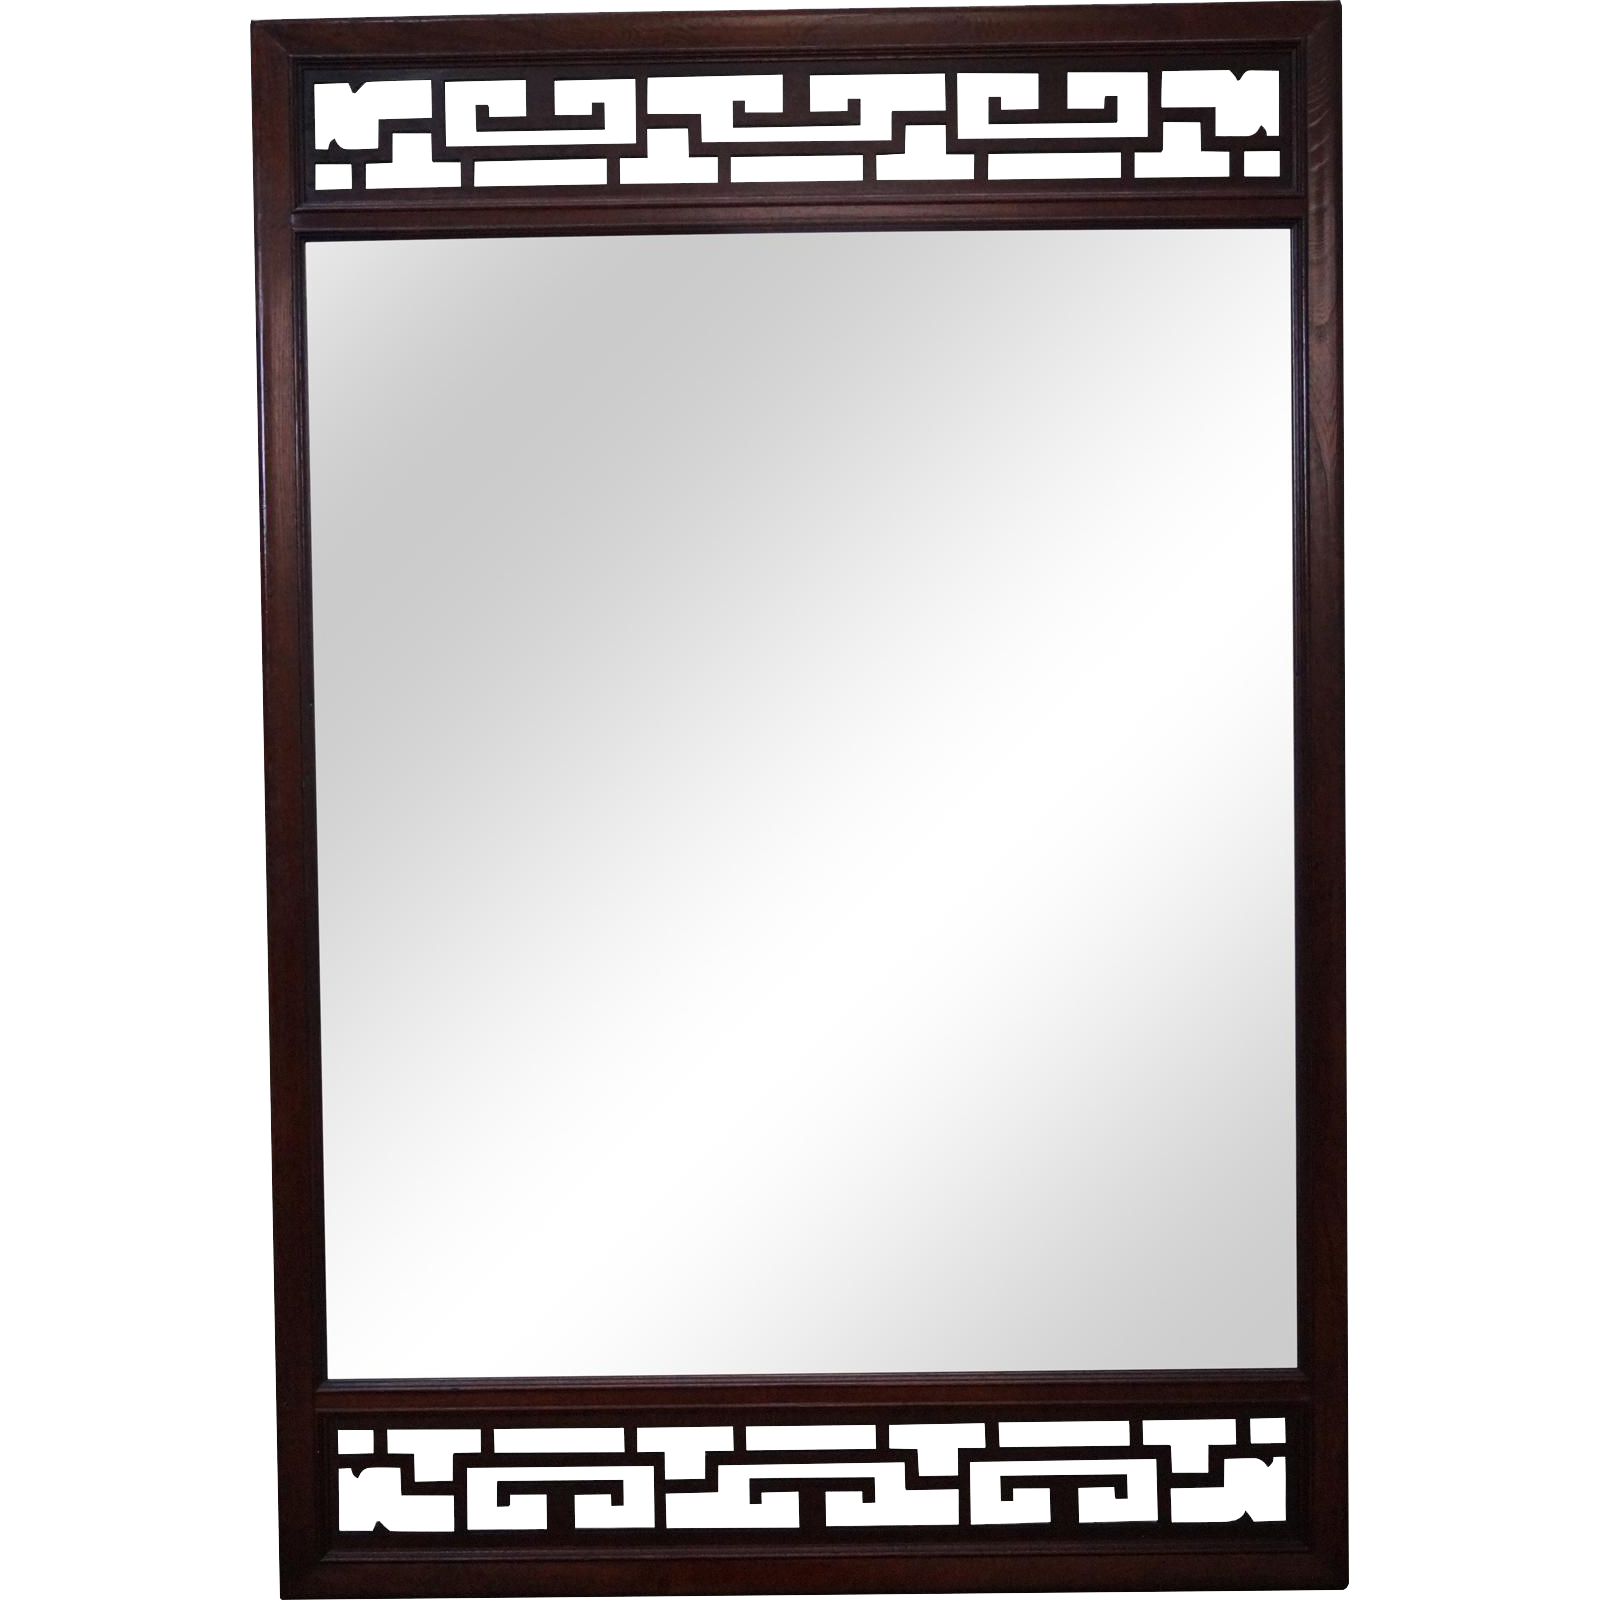 Baker asian style mahogany fretwork hanging wall mirror from bucks baker asian style mahogany fretwork hanging wall mirror amipublicfo Choice Image